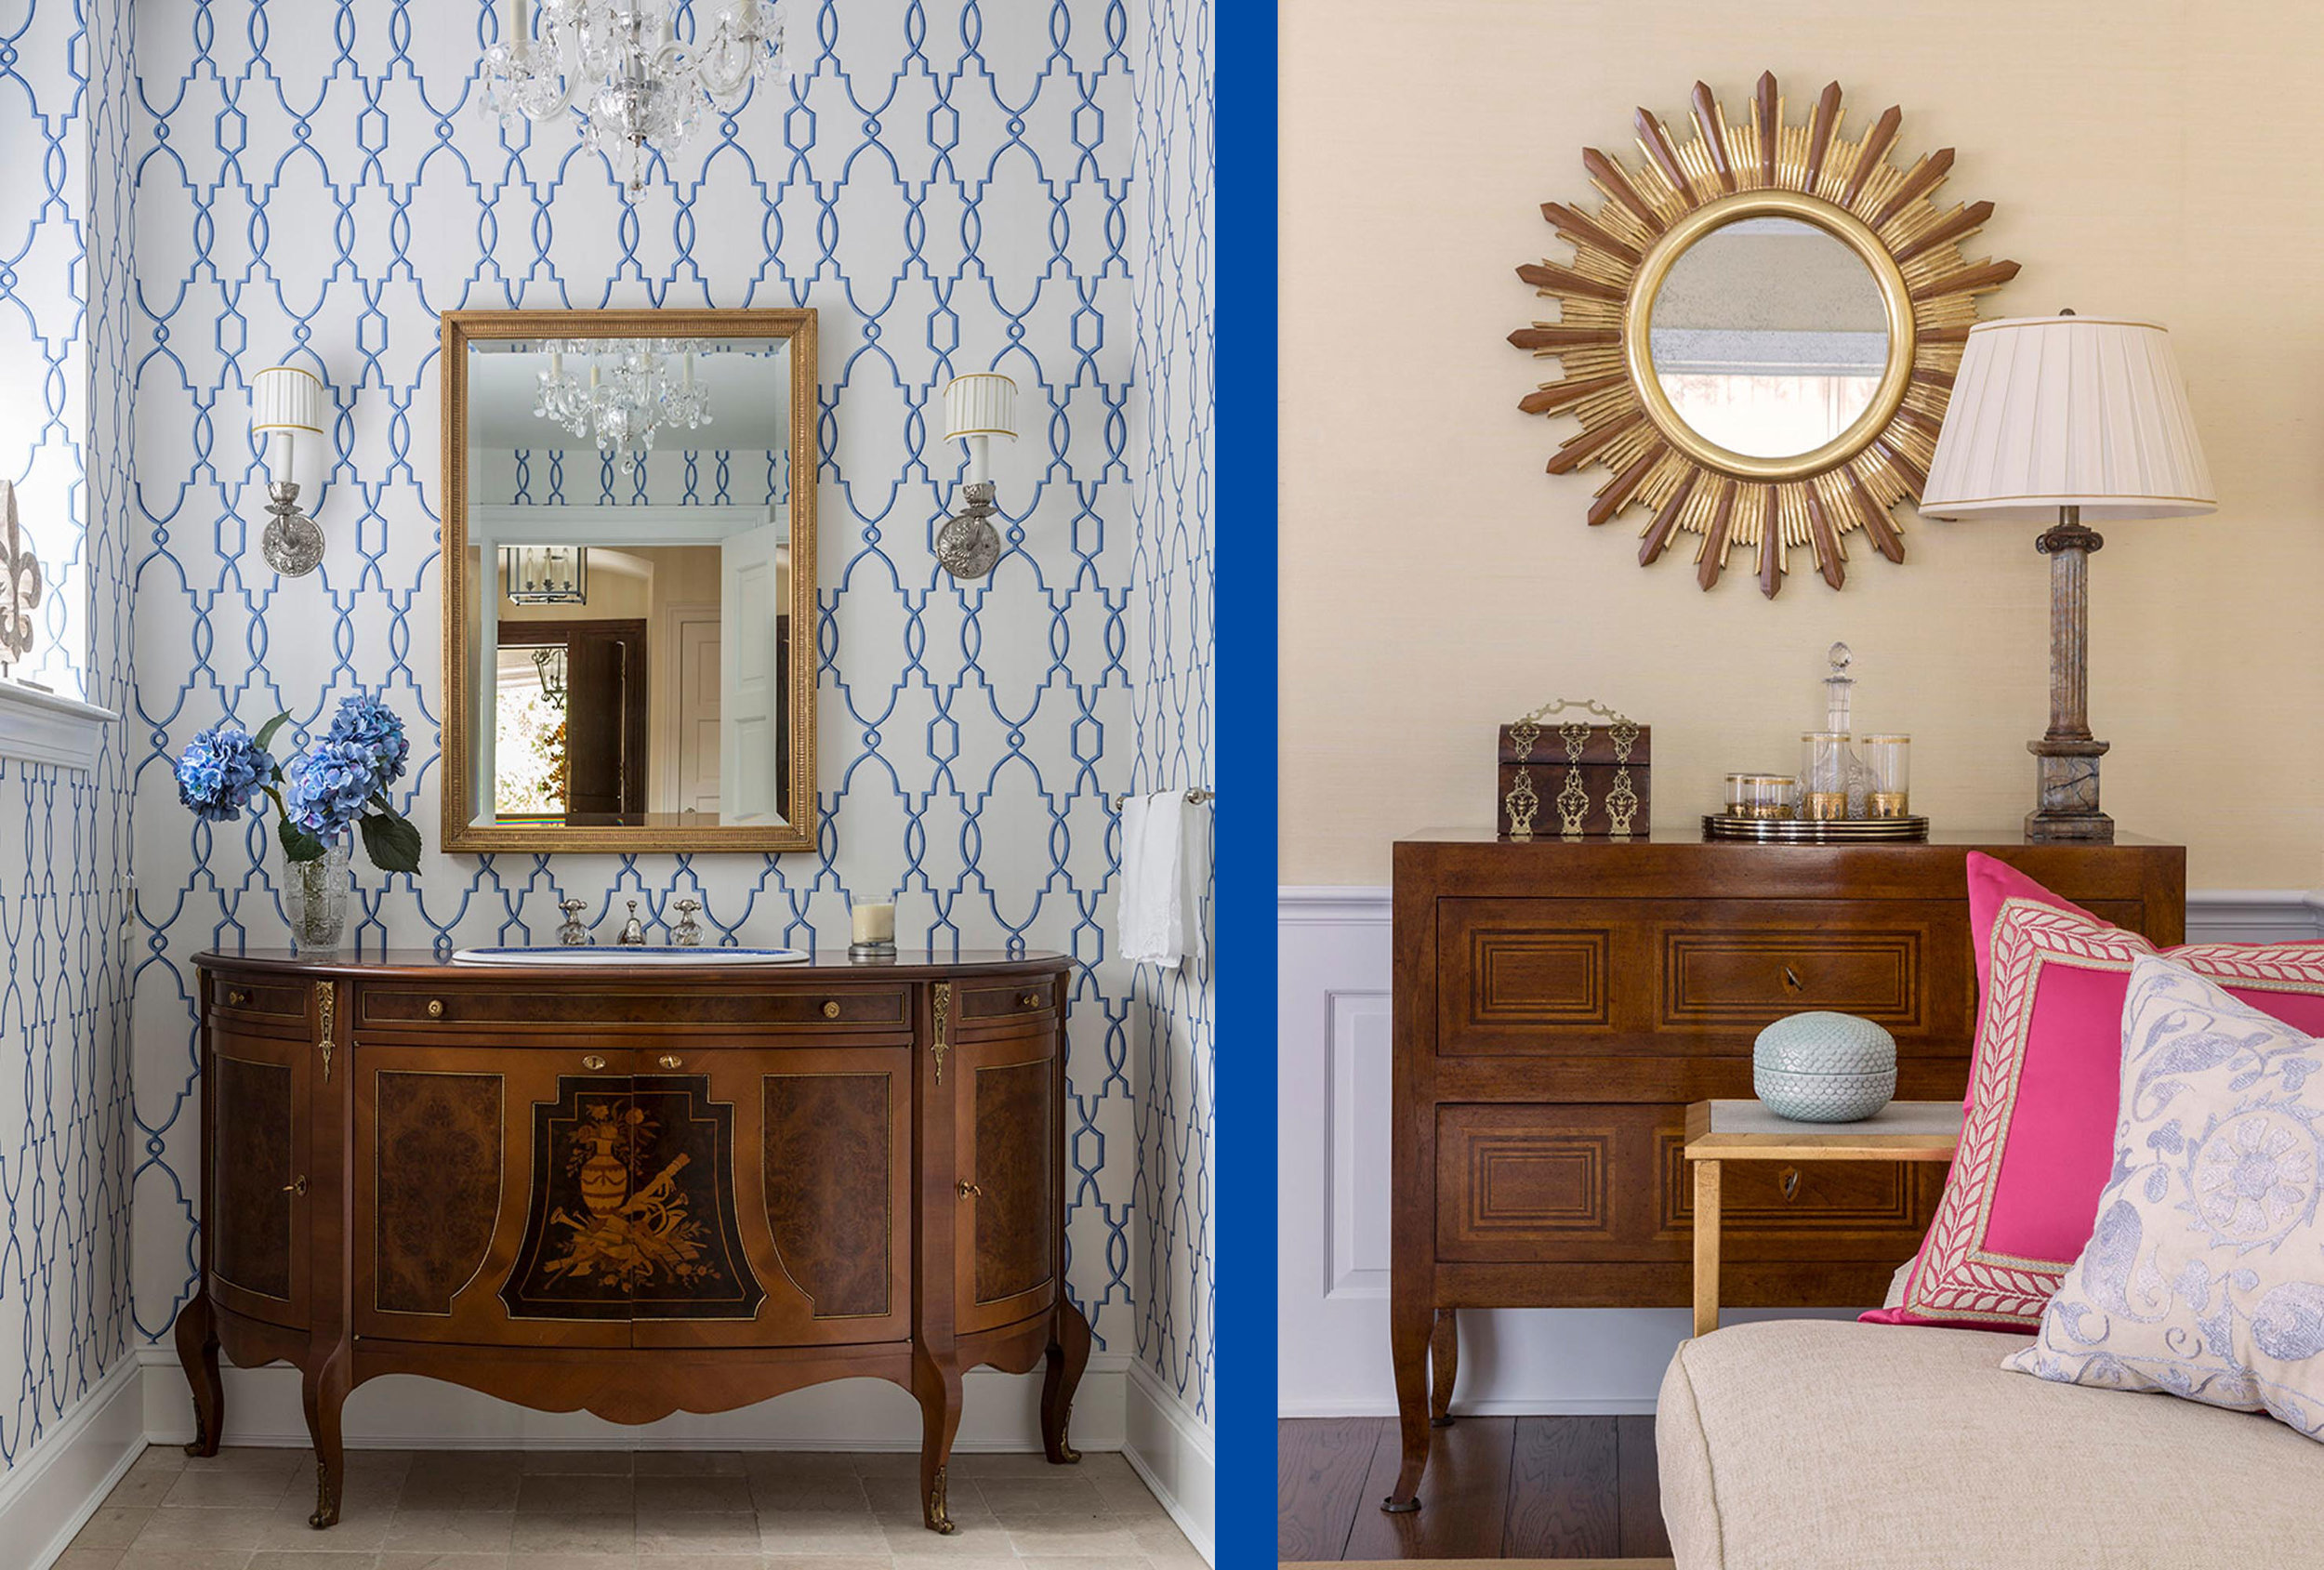 Stylish side tables and displays